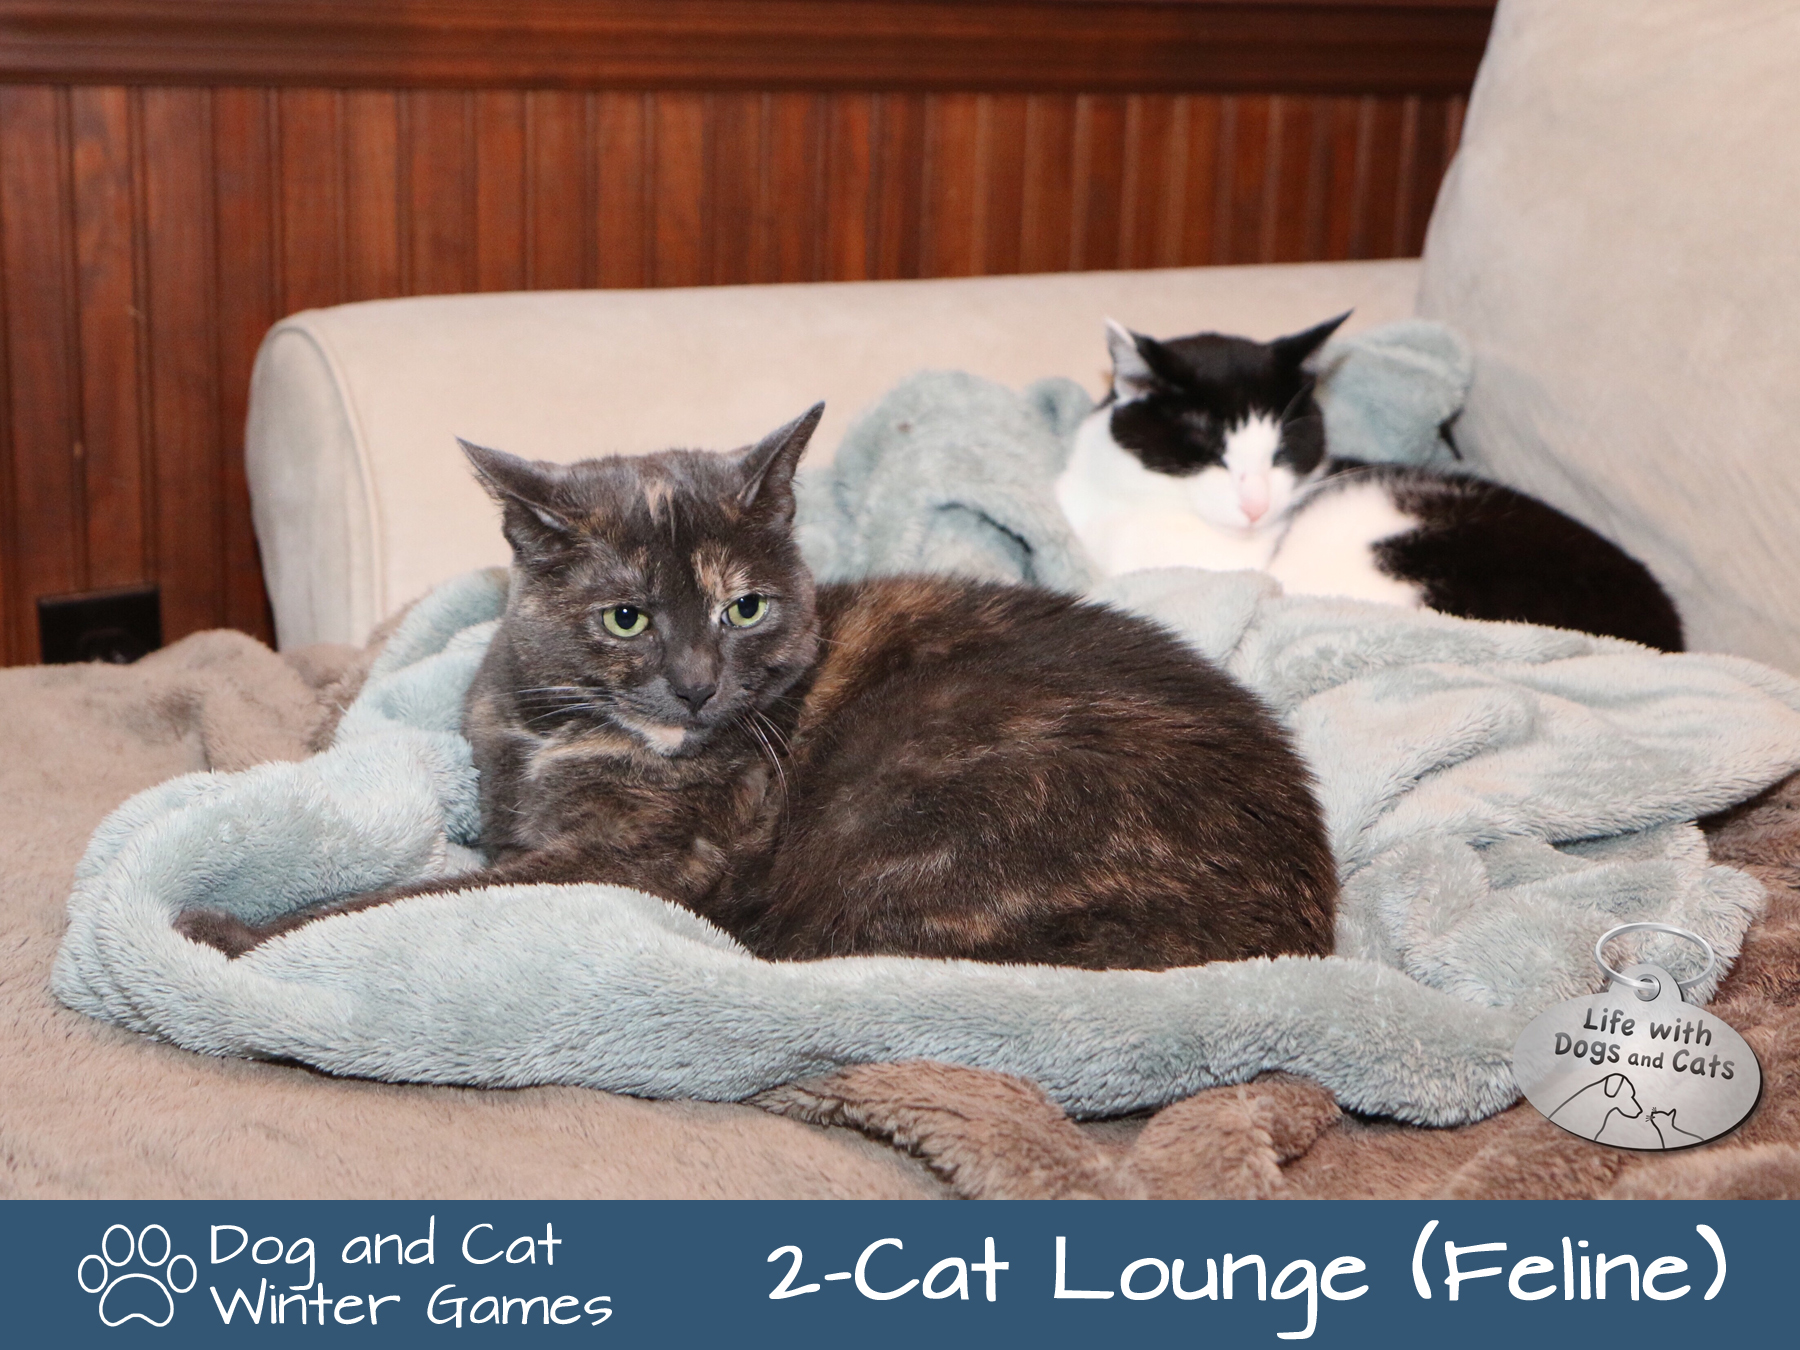 Dog and Cat Winter Games: Two-cat lounge